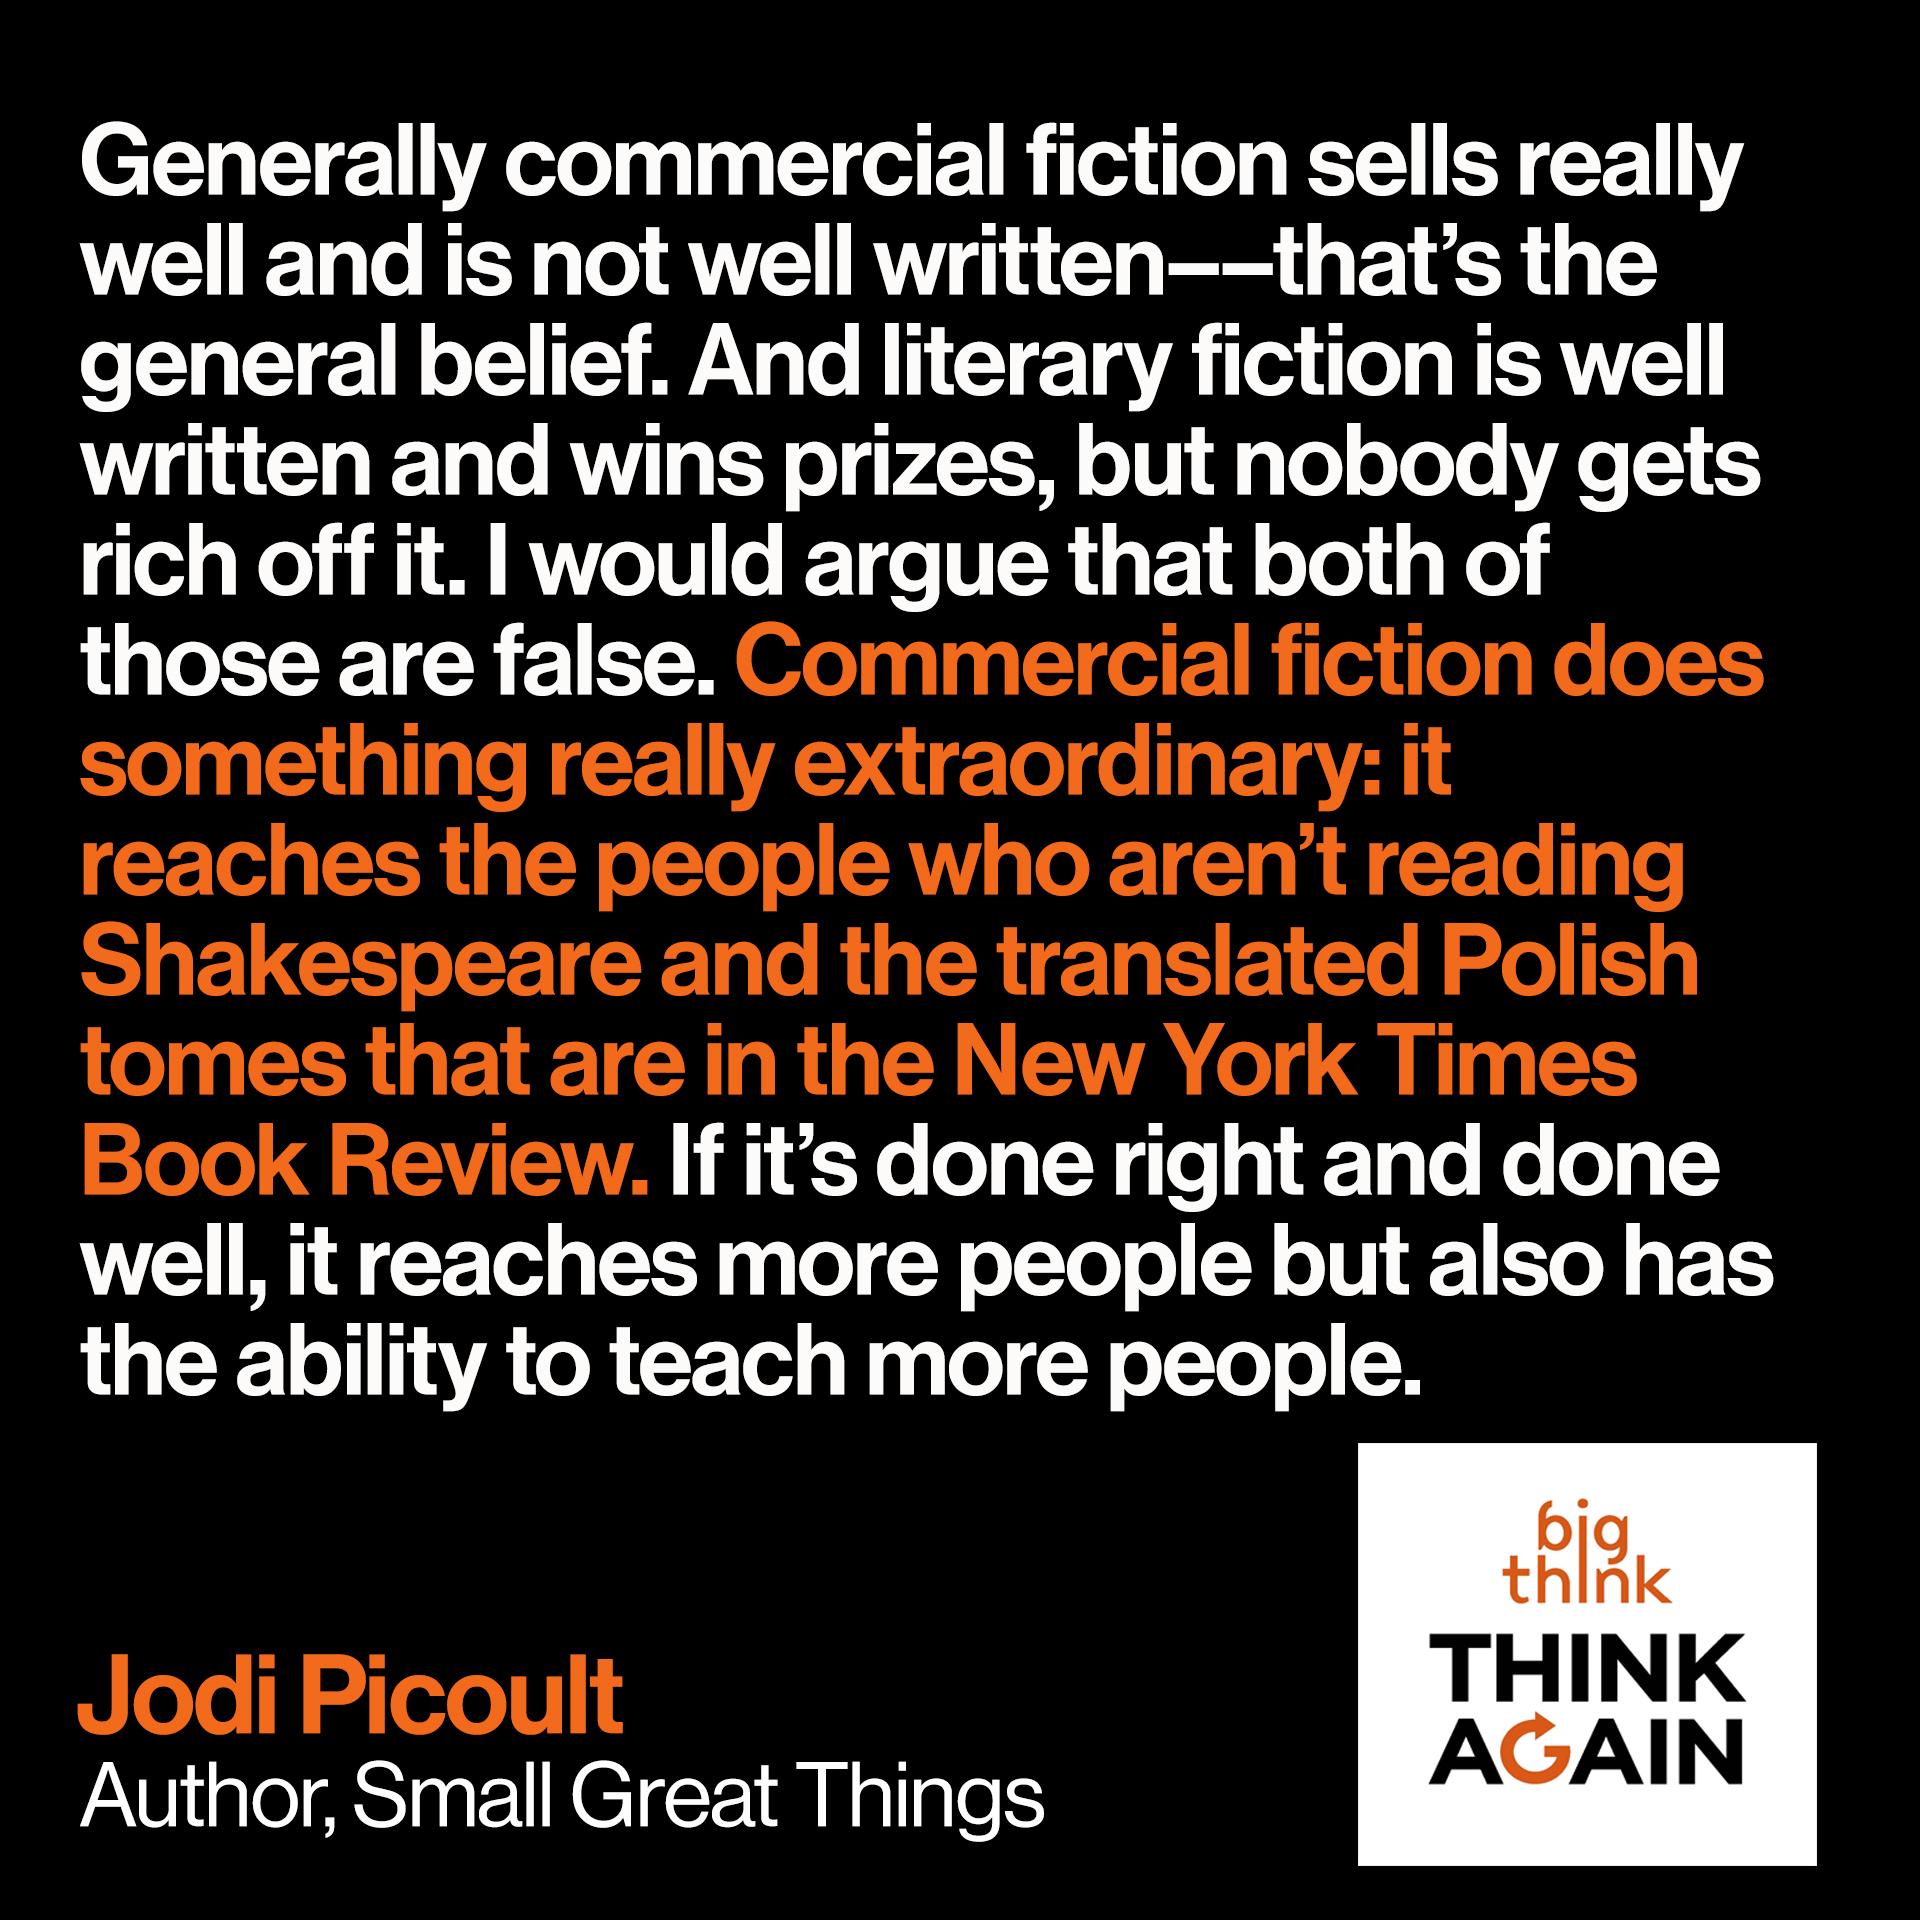 Jodi Picoult Quote: Generally commercial fiction sells really well and is not well written––that's the general belief. And literary fiction is well written and wins prizes, but nobody gets rich off it. I would argue that both of those are false. Commercial fiction does something really extraordinary: it reaches the people who aren't reading Shakespeare and the translated Polish tomes that are in the New York Times Book Review. If it's done right and done well, it reaches more people but also has the ability to teach more people.